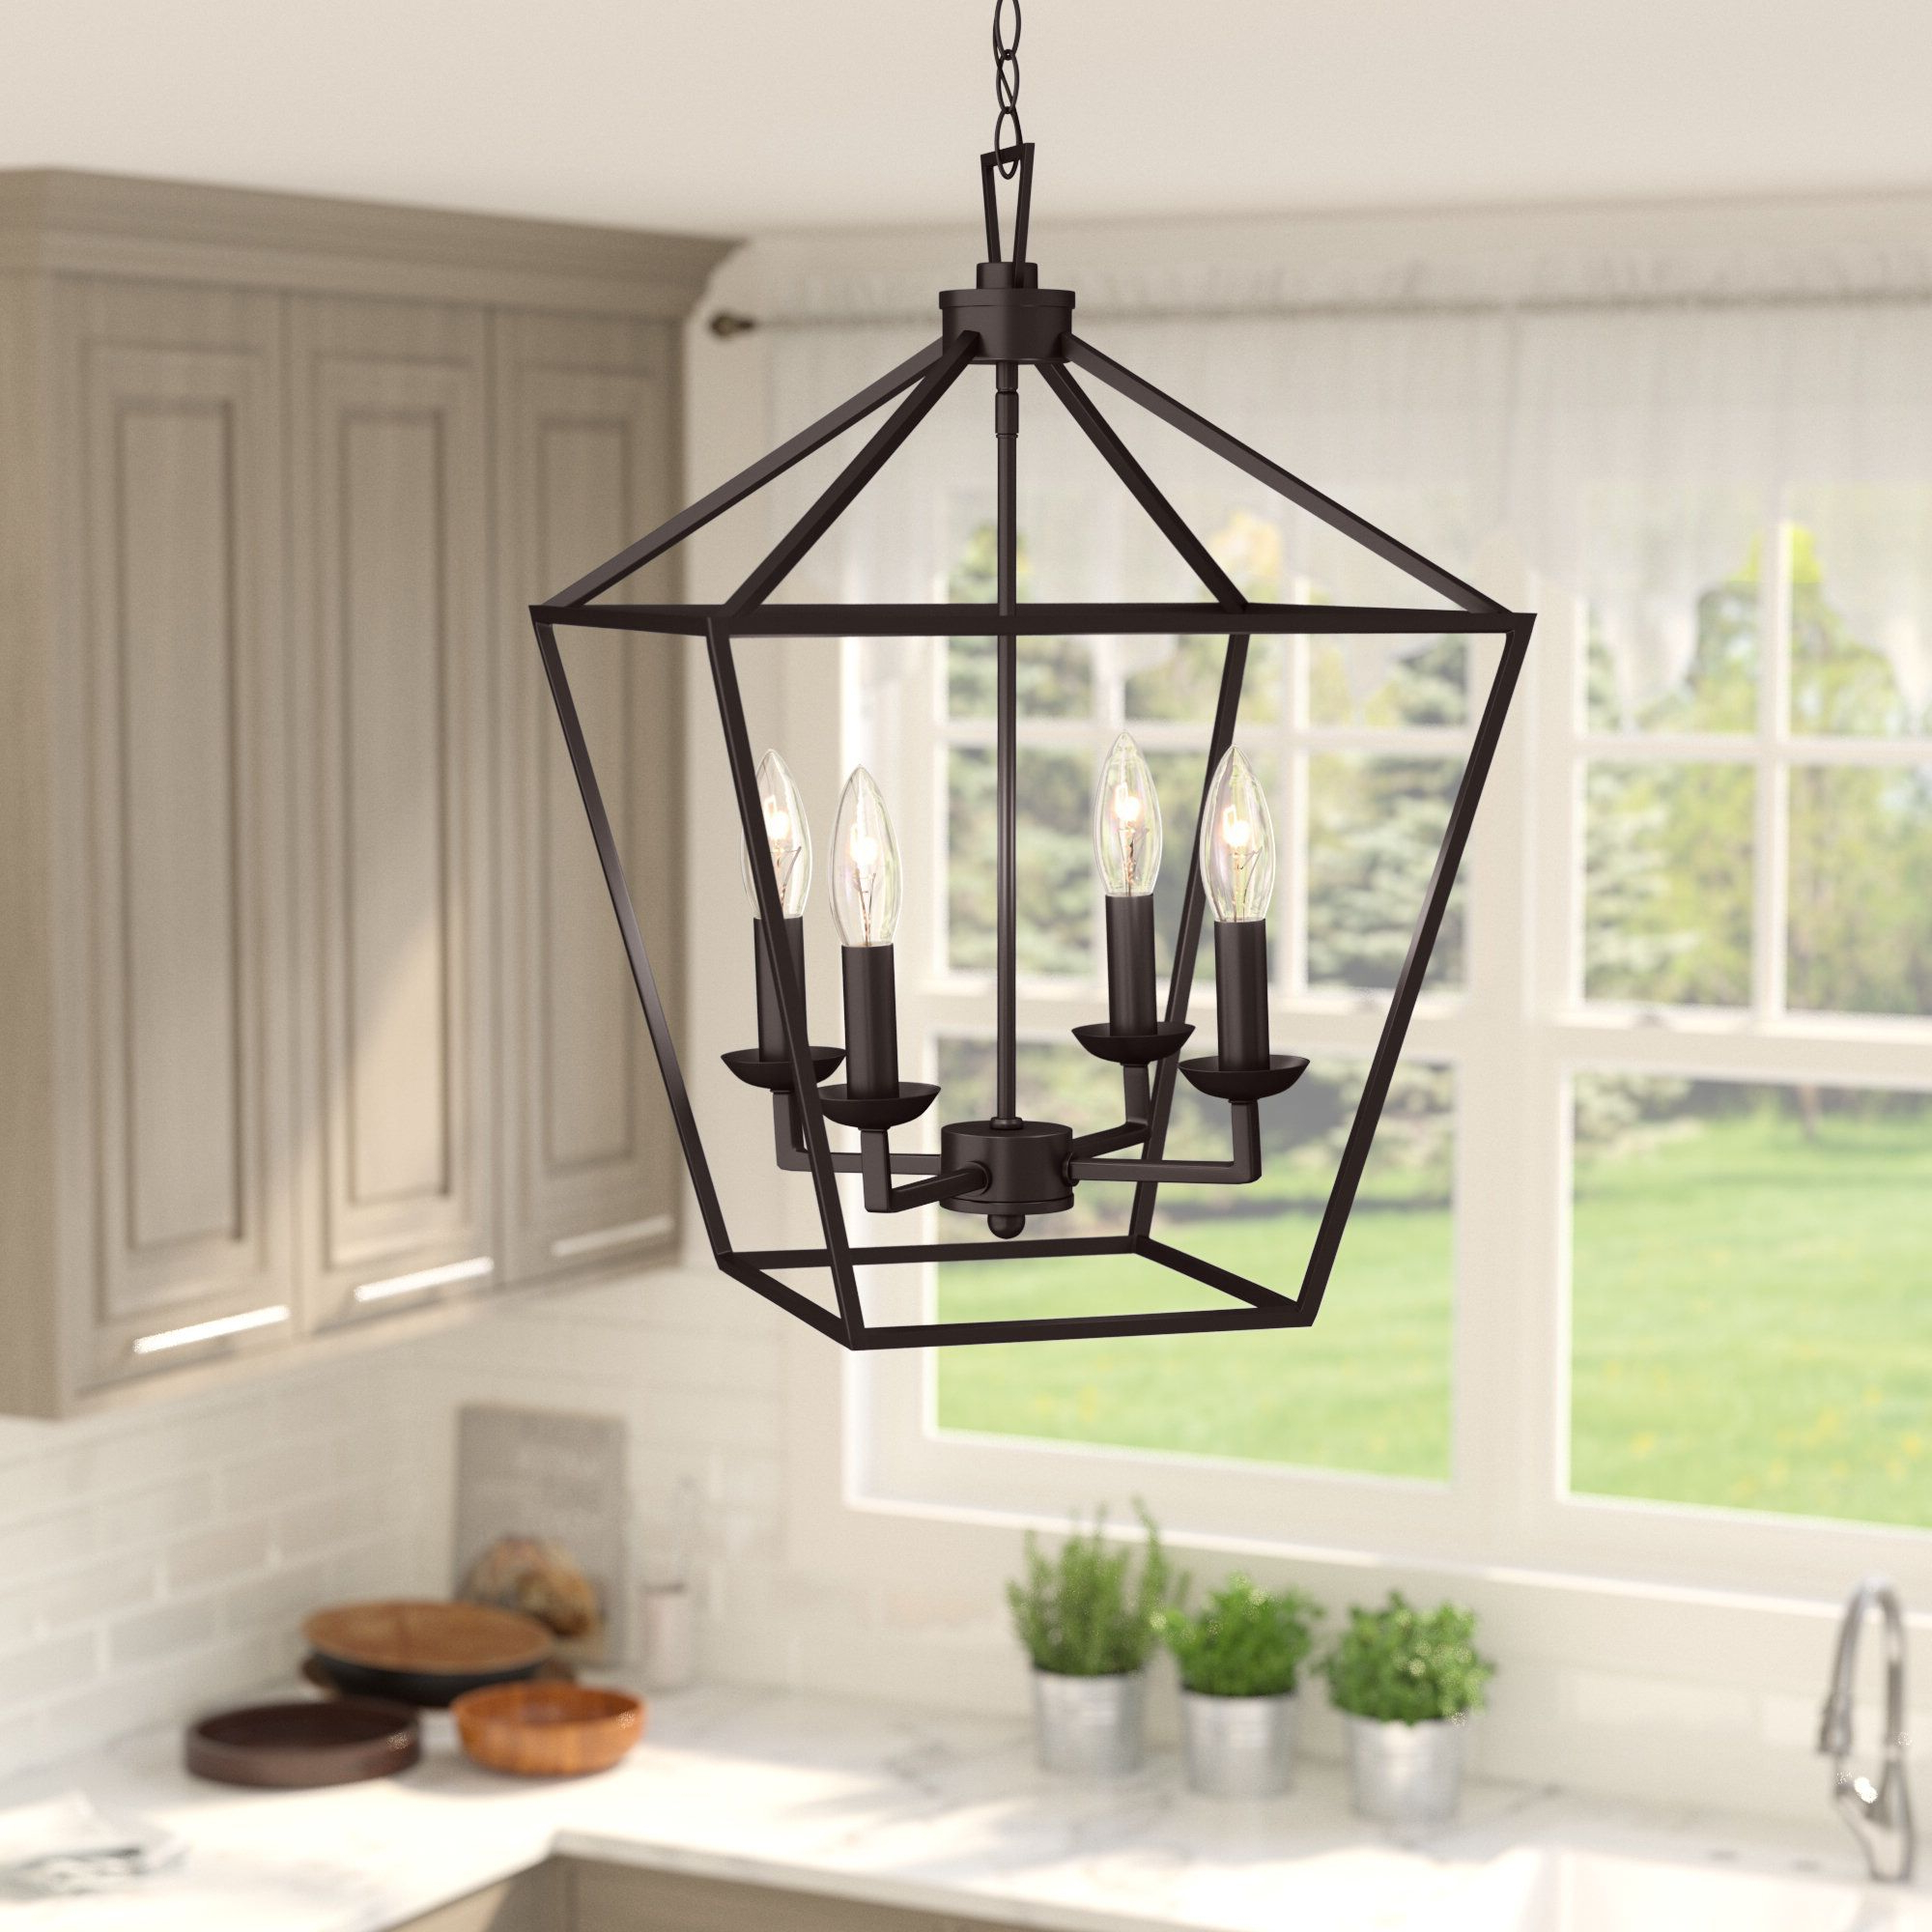 Most Popular Carmen 4 Light Lantern Pendant In  (View 14 of 20)